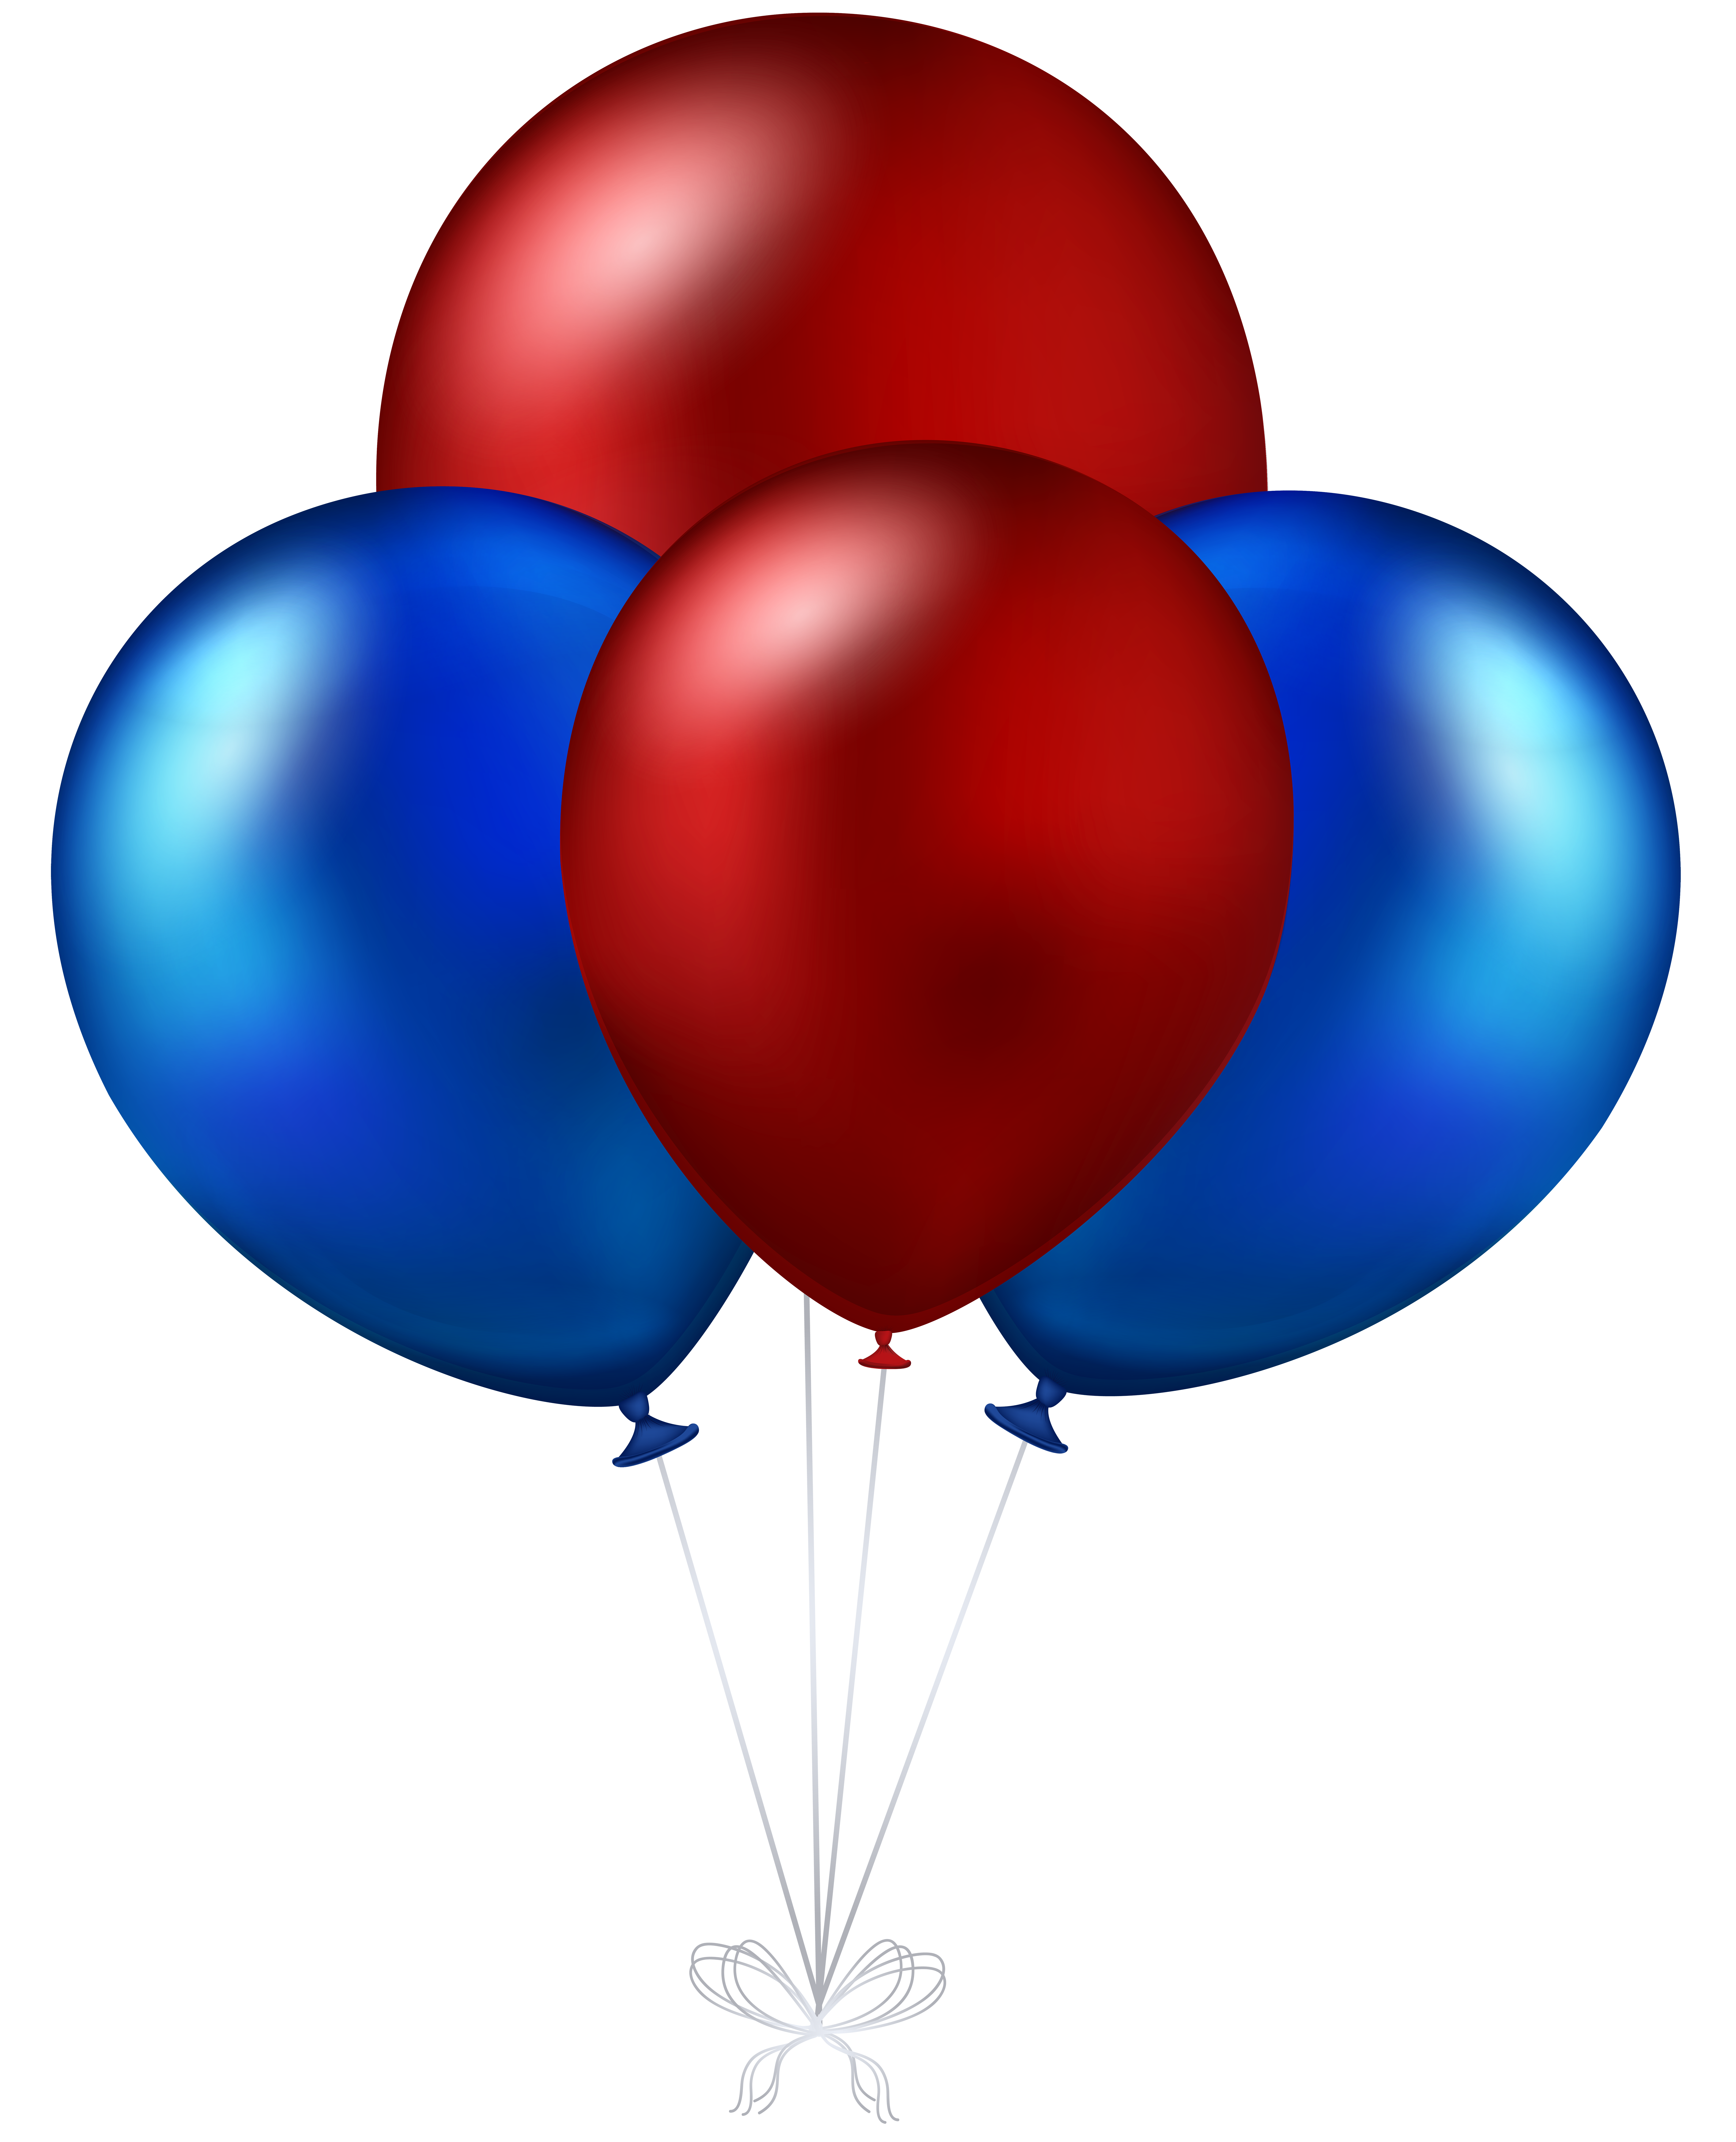 Star balloons clipart royalty free library Red and Blue Balloons Transparent PNG Clip Art Image | Gallery ... royalty free library